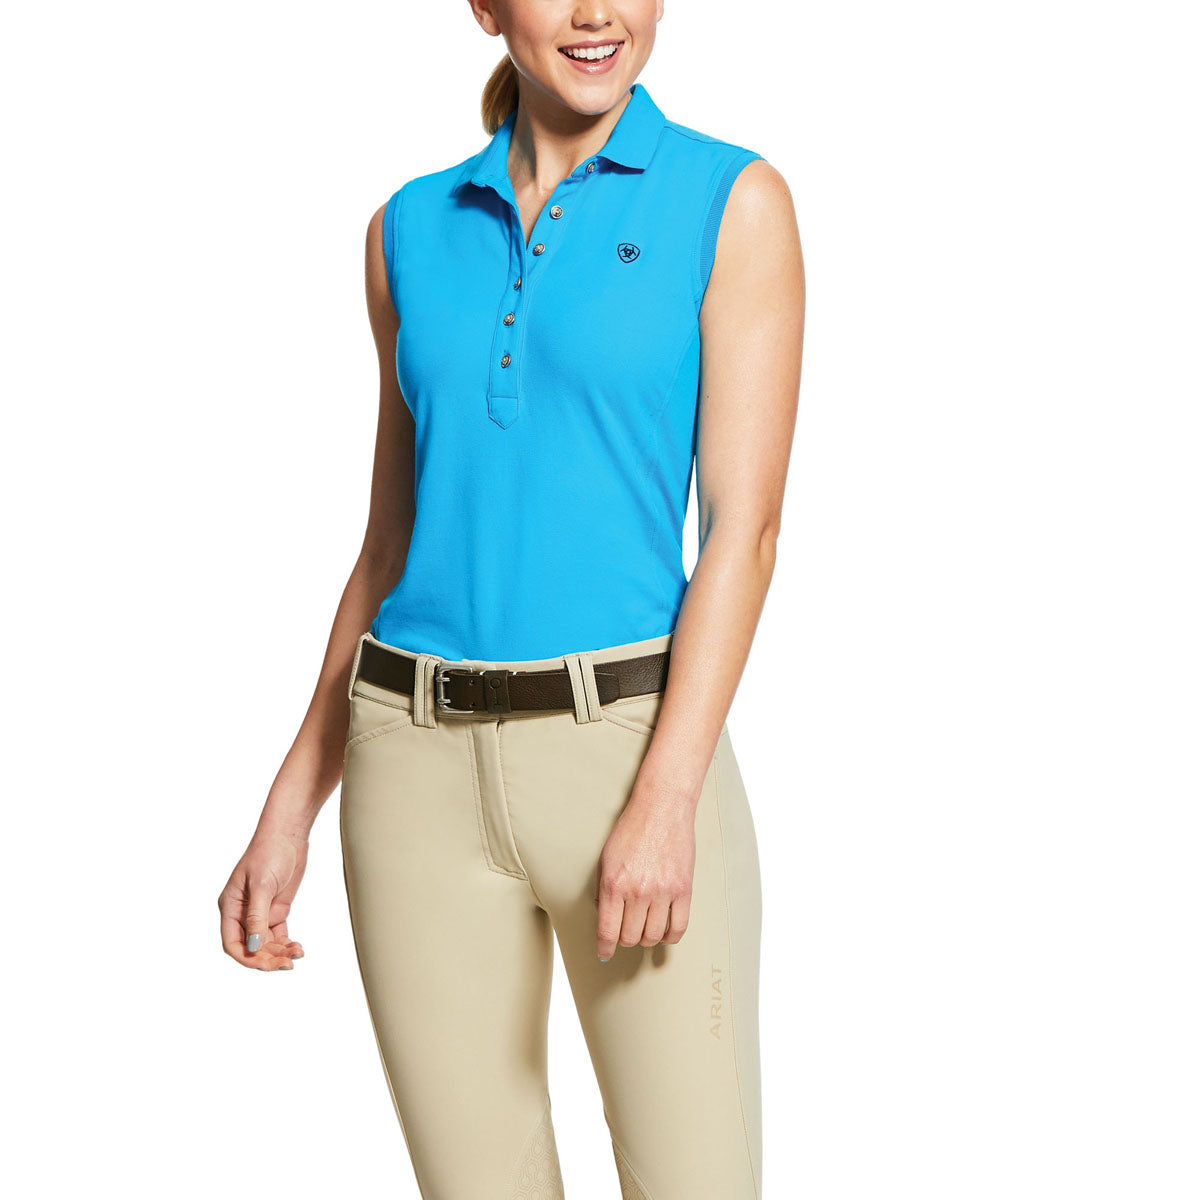 Ariat Women's Prix 2.0 Sleeveless Polo Shirt